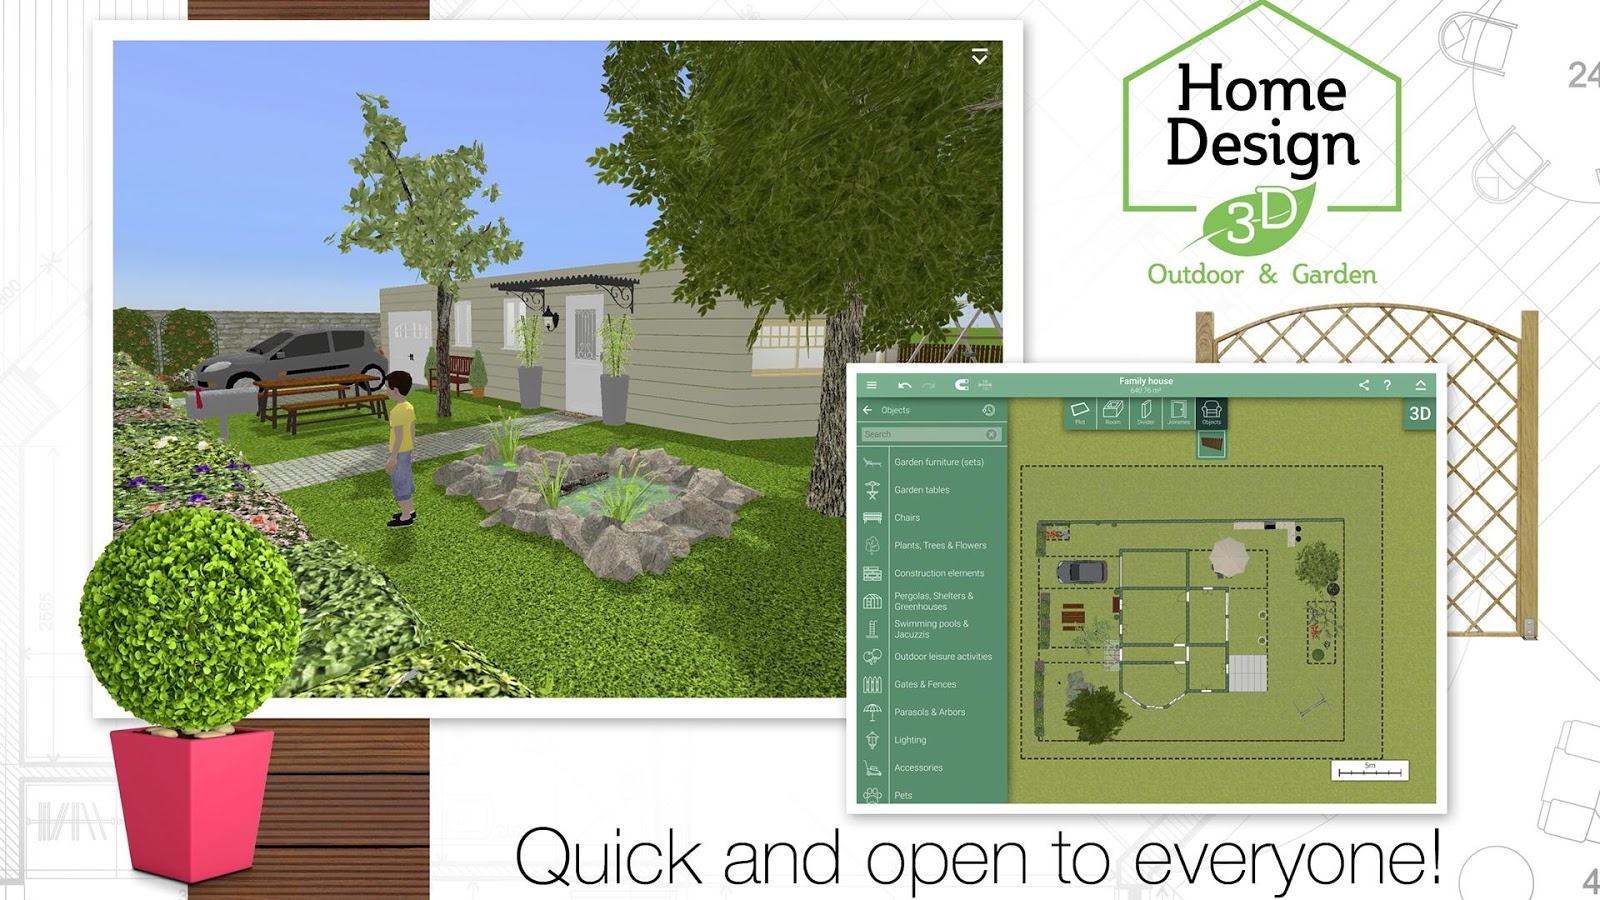 home design 3d outdoor garden android apps on google play home design 3d in kerala 2017 2018 best cars reviews